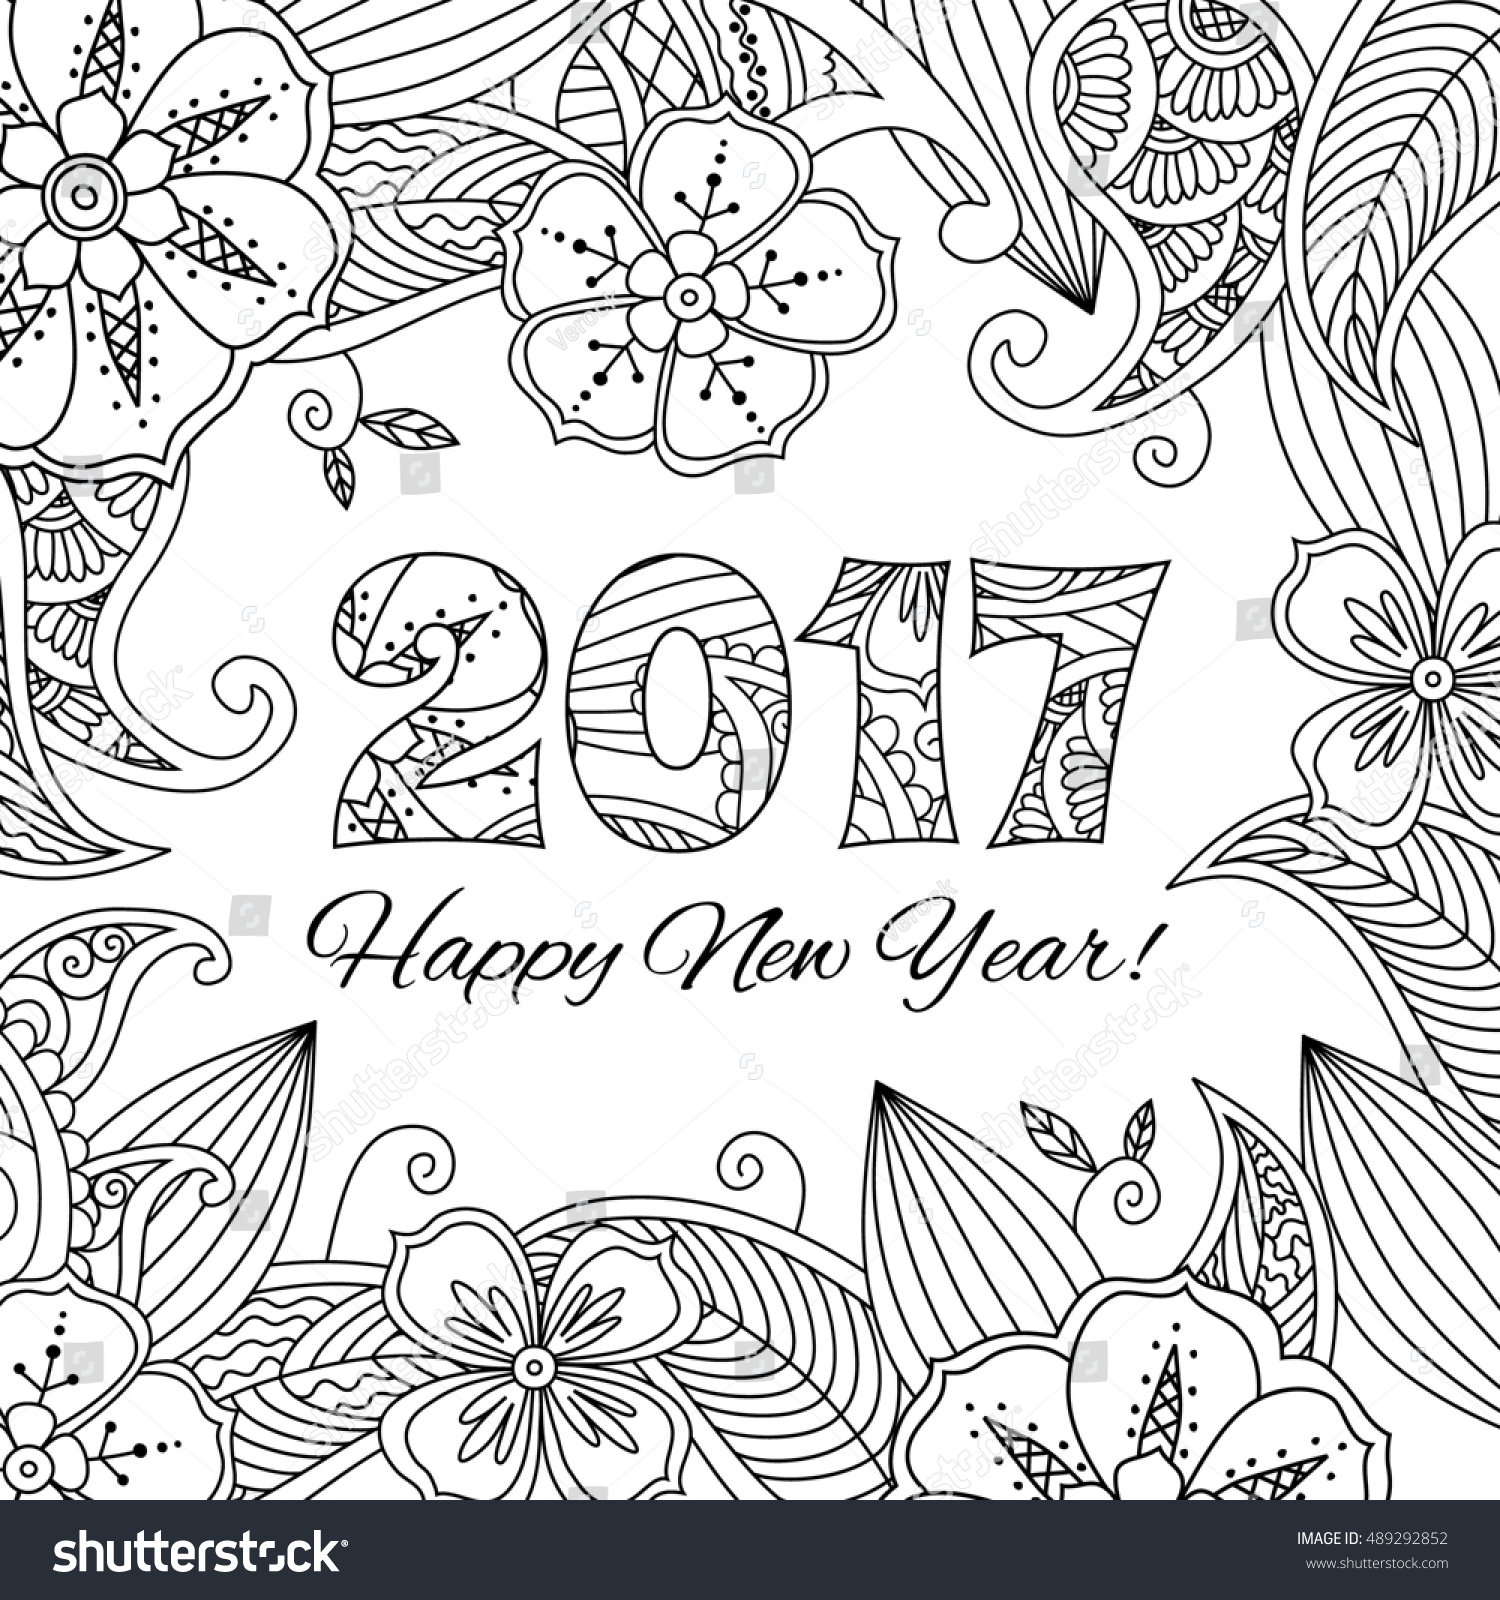 New Years Card Numbers 2017 On Stock Illustration